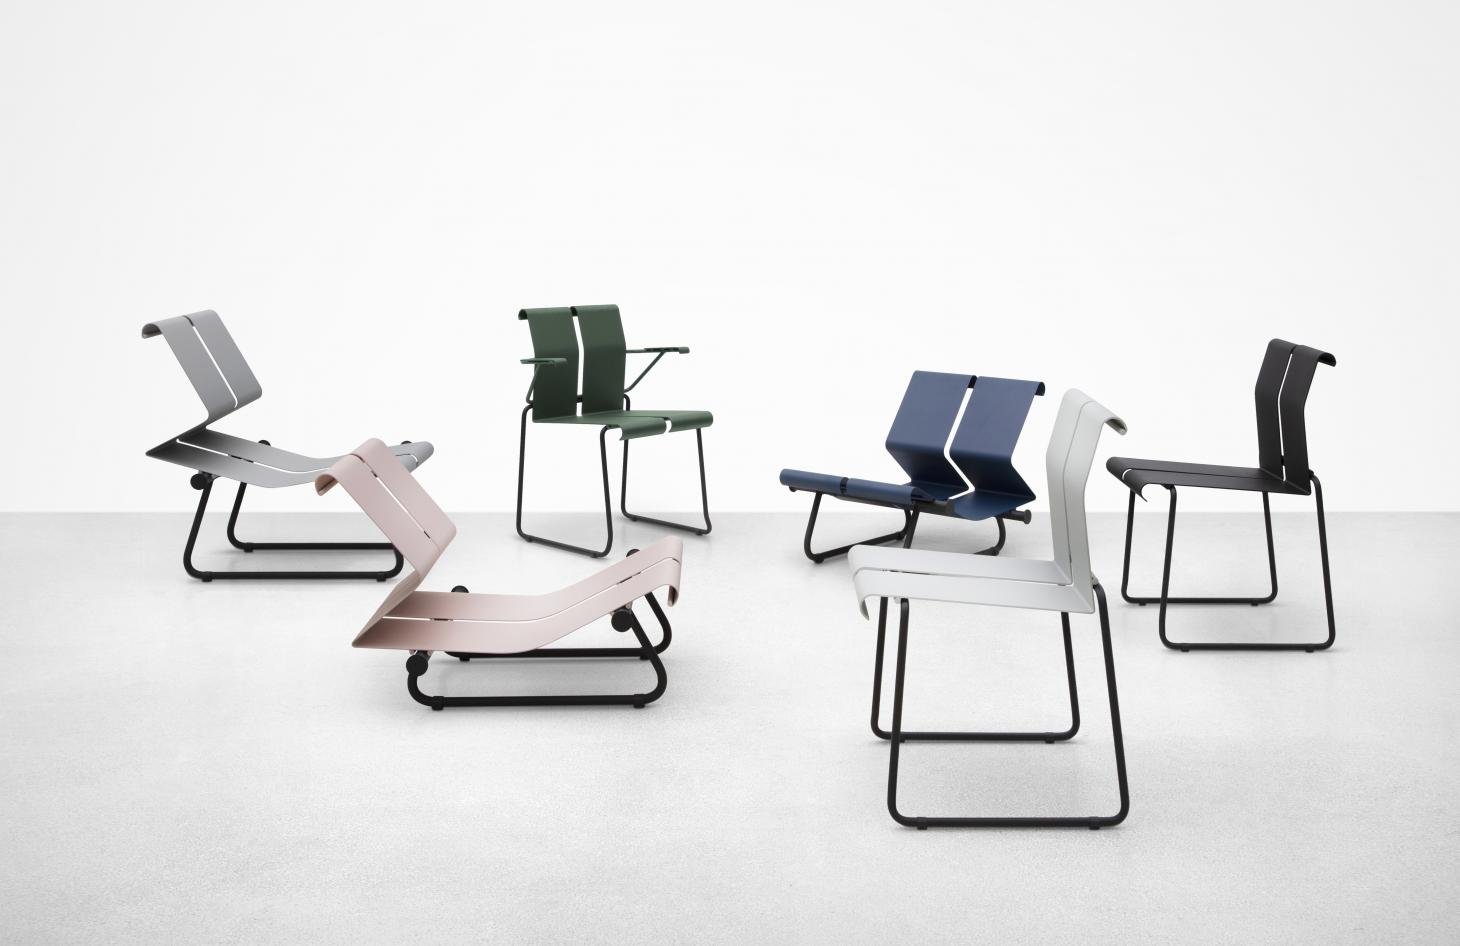 A series of chairs whose seat and back are made by a continuous, folded metal sheet, in pink, grey, white, green and blue